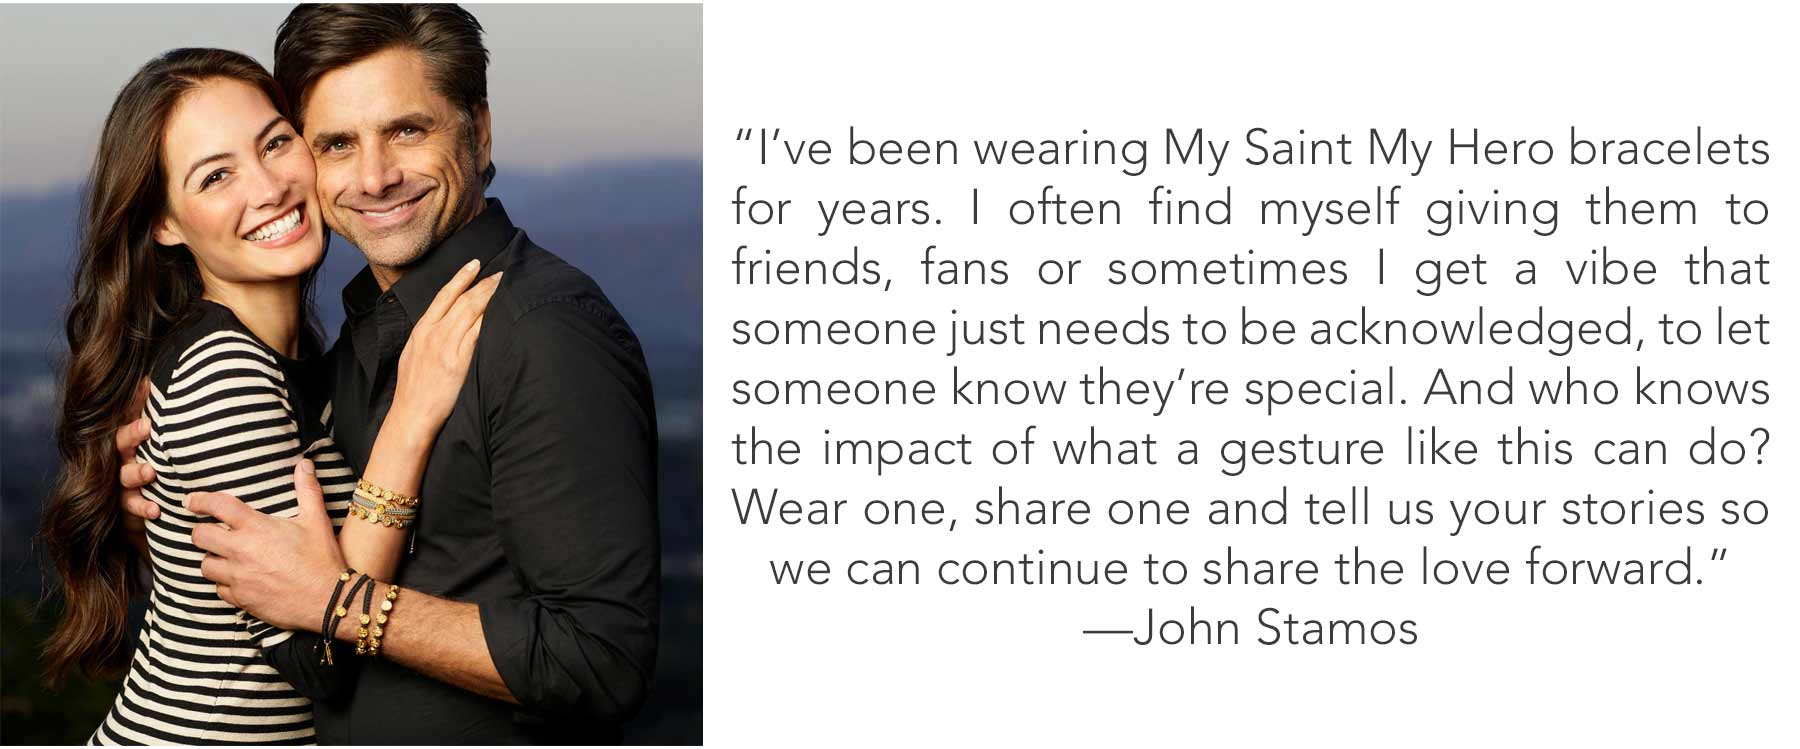 Caitlin and John Stamos in Share the Love St Amos Bracelets